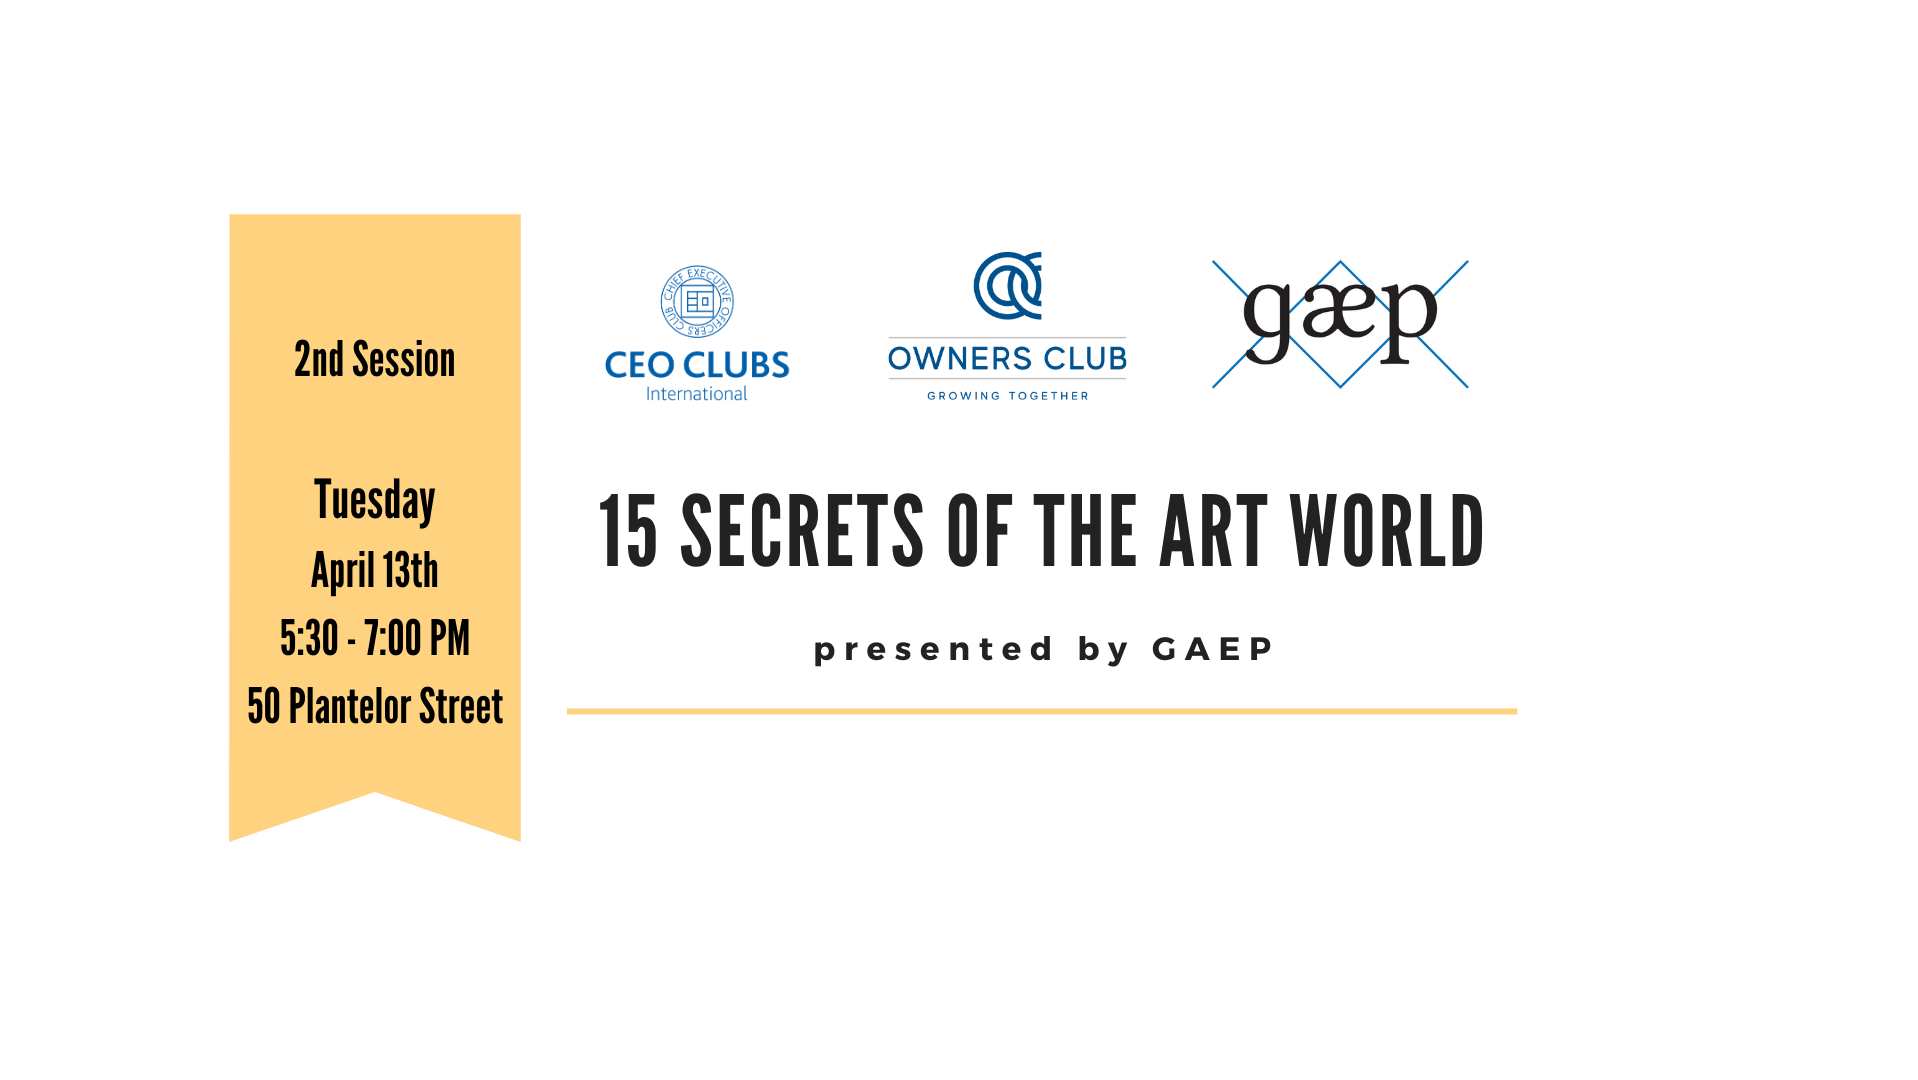 Session 2 -  fuel your passiON for art: 15 Secrets of the Art World